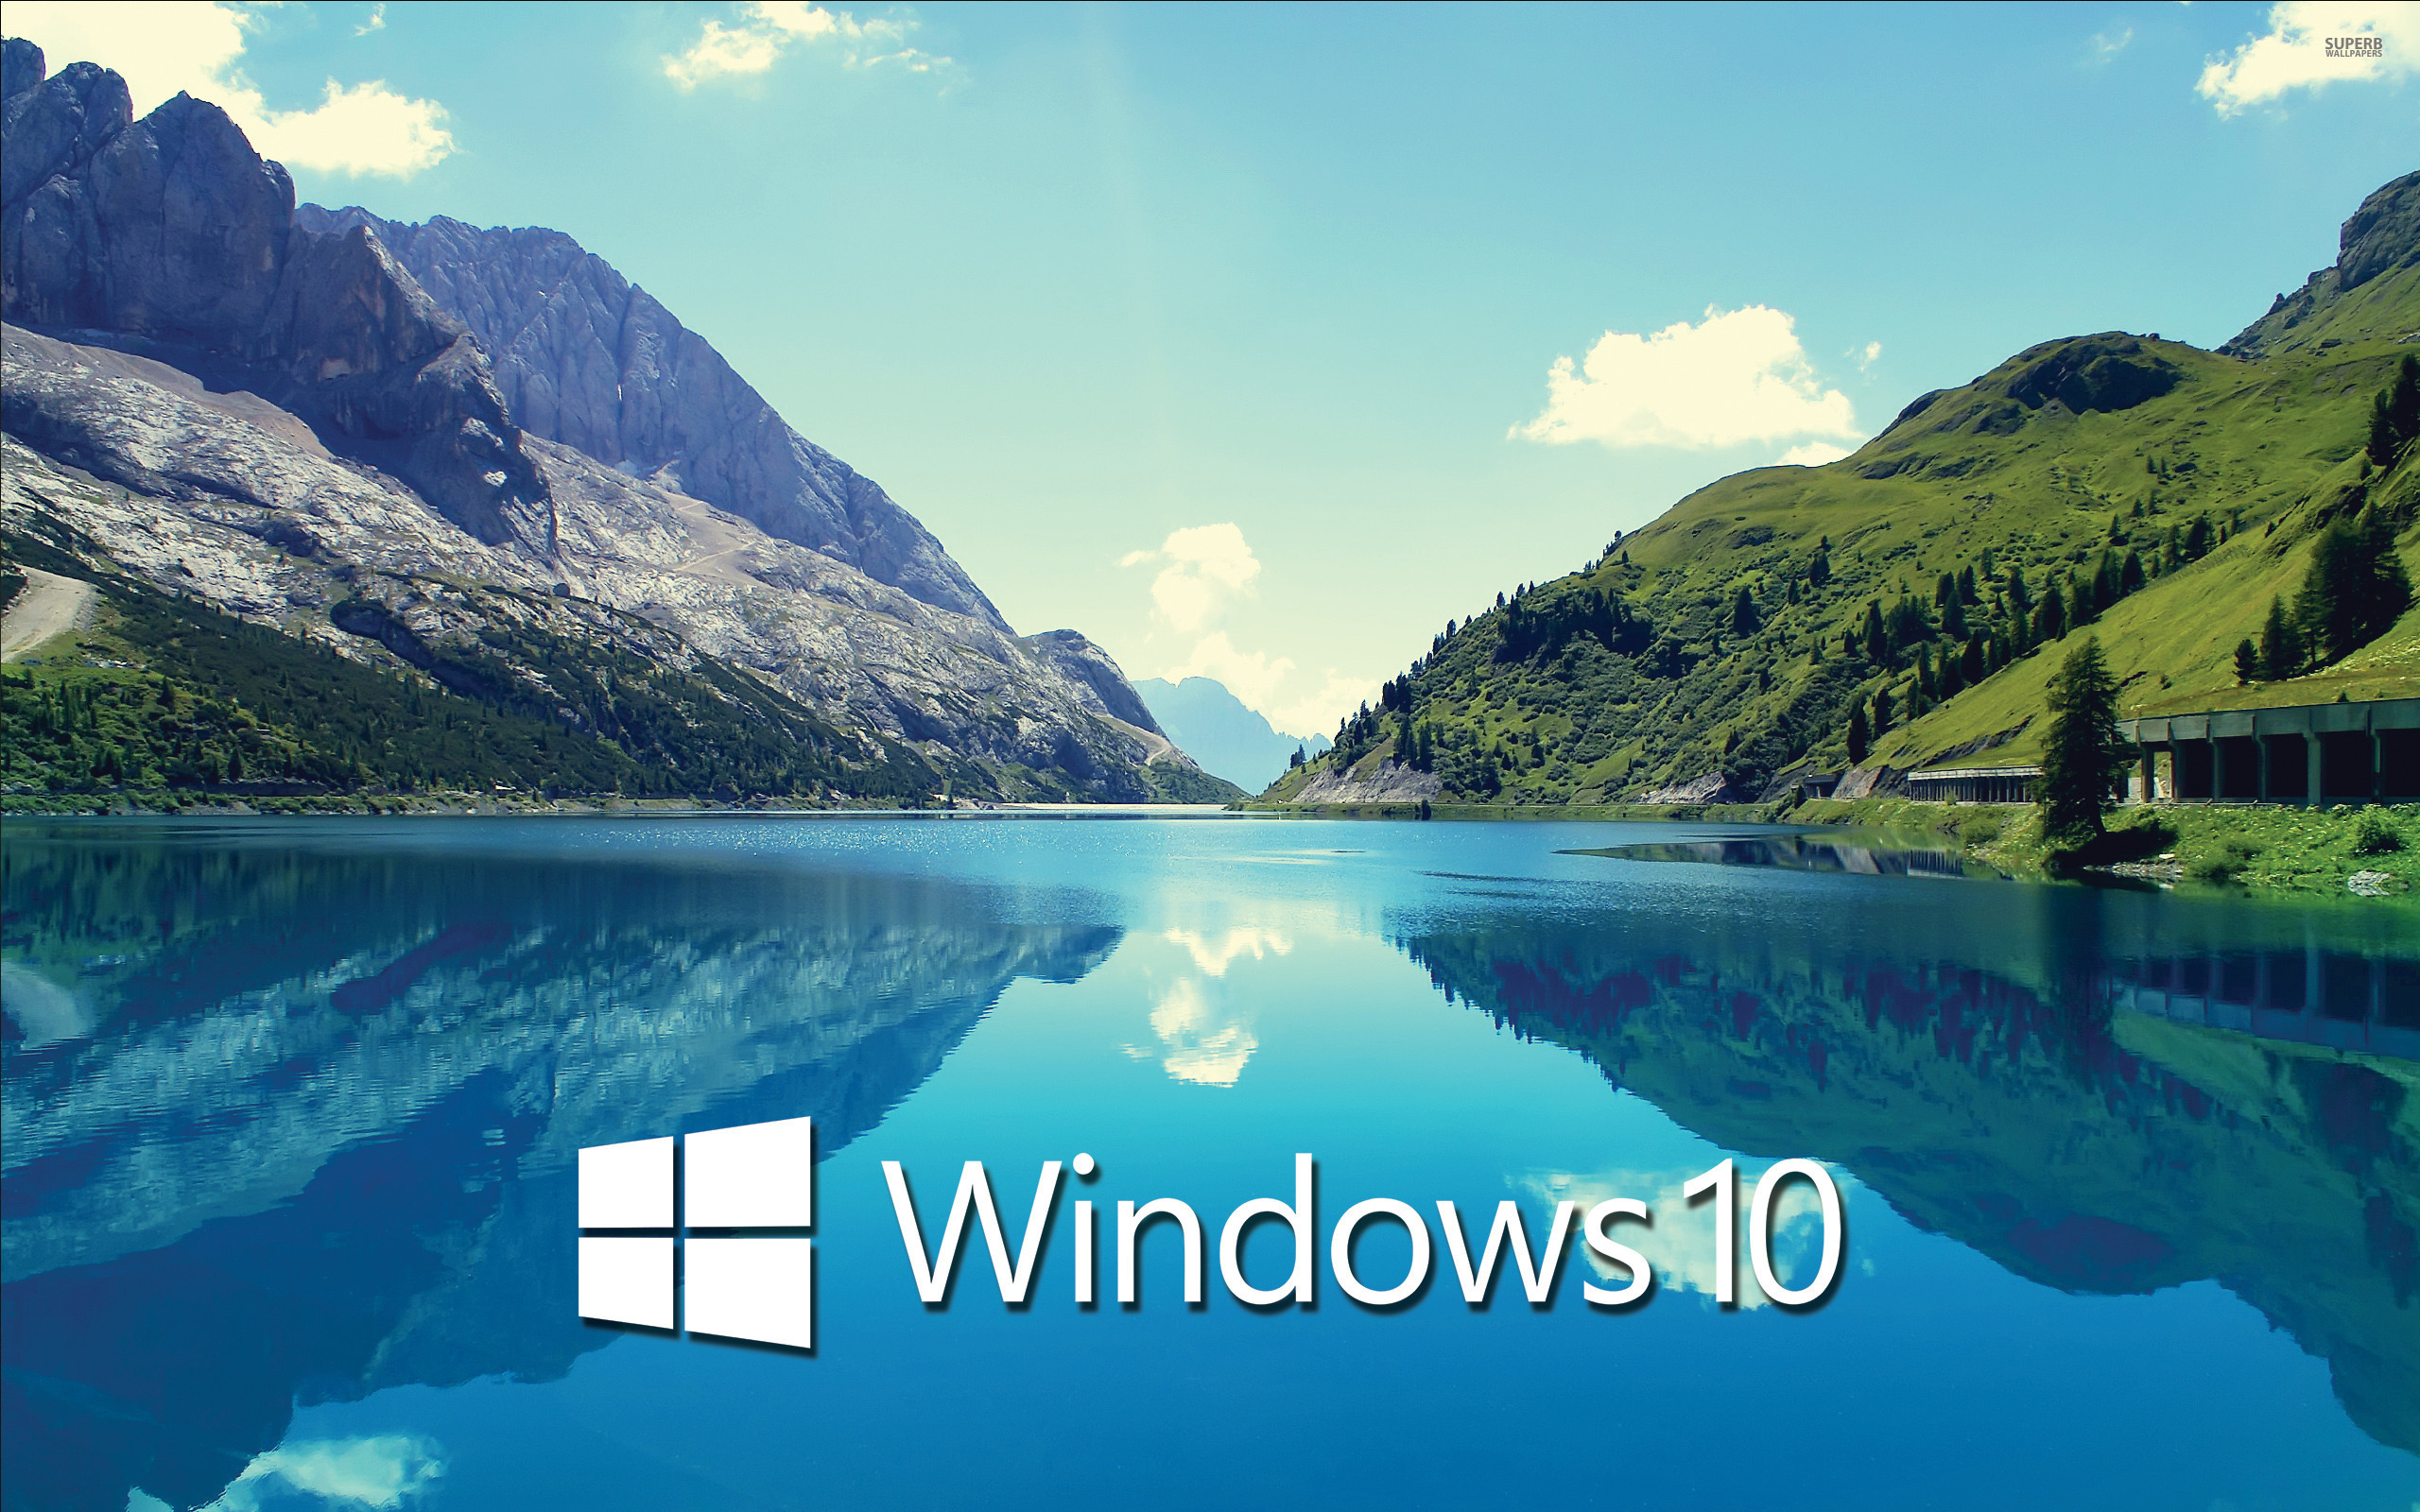 Windows 10 Computer Wallpaper Wallpapersafari